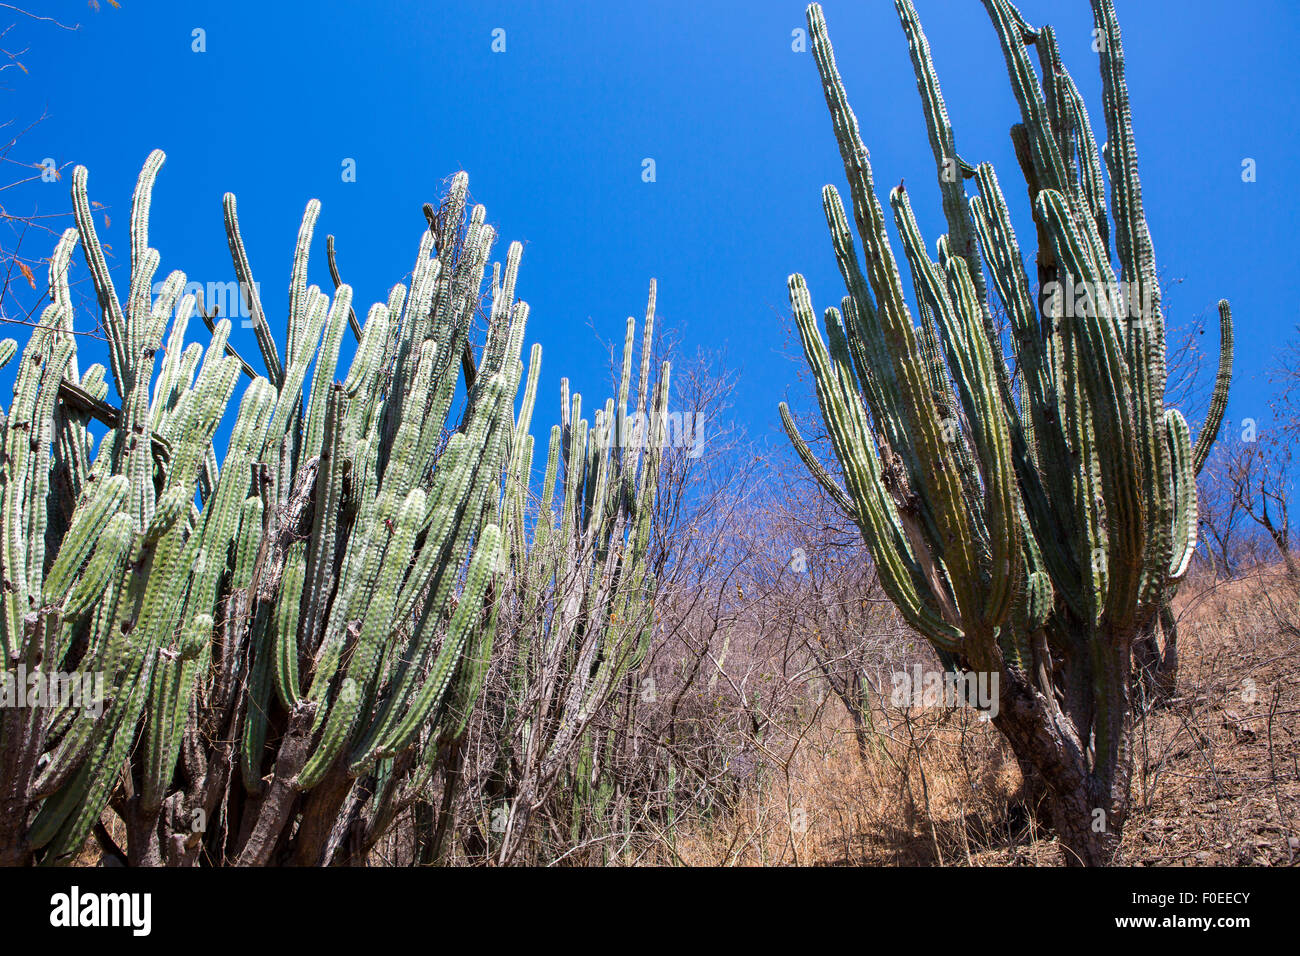 Dense cactus growth in a dry desolate desert. Taganga, Colombia 2014. Stock Photo